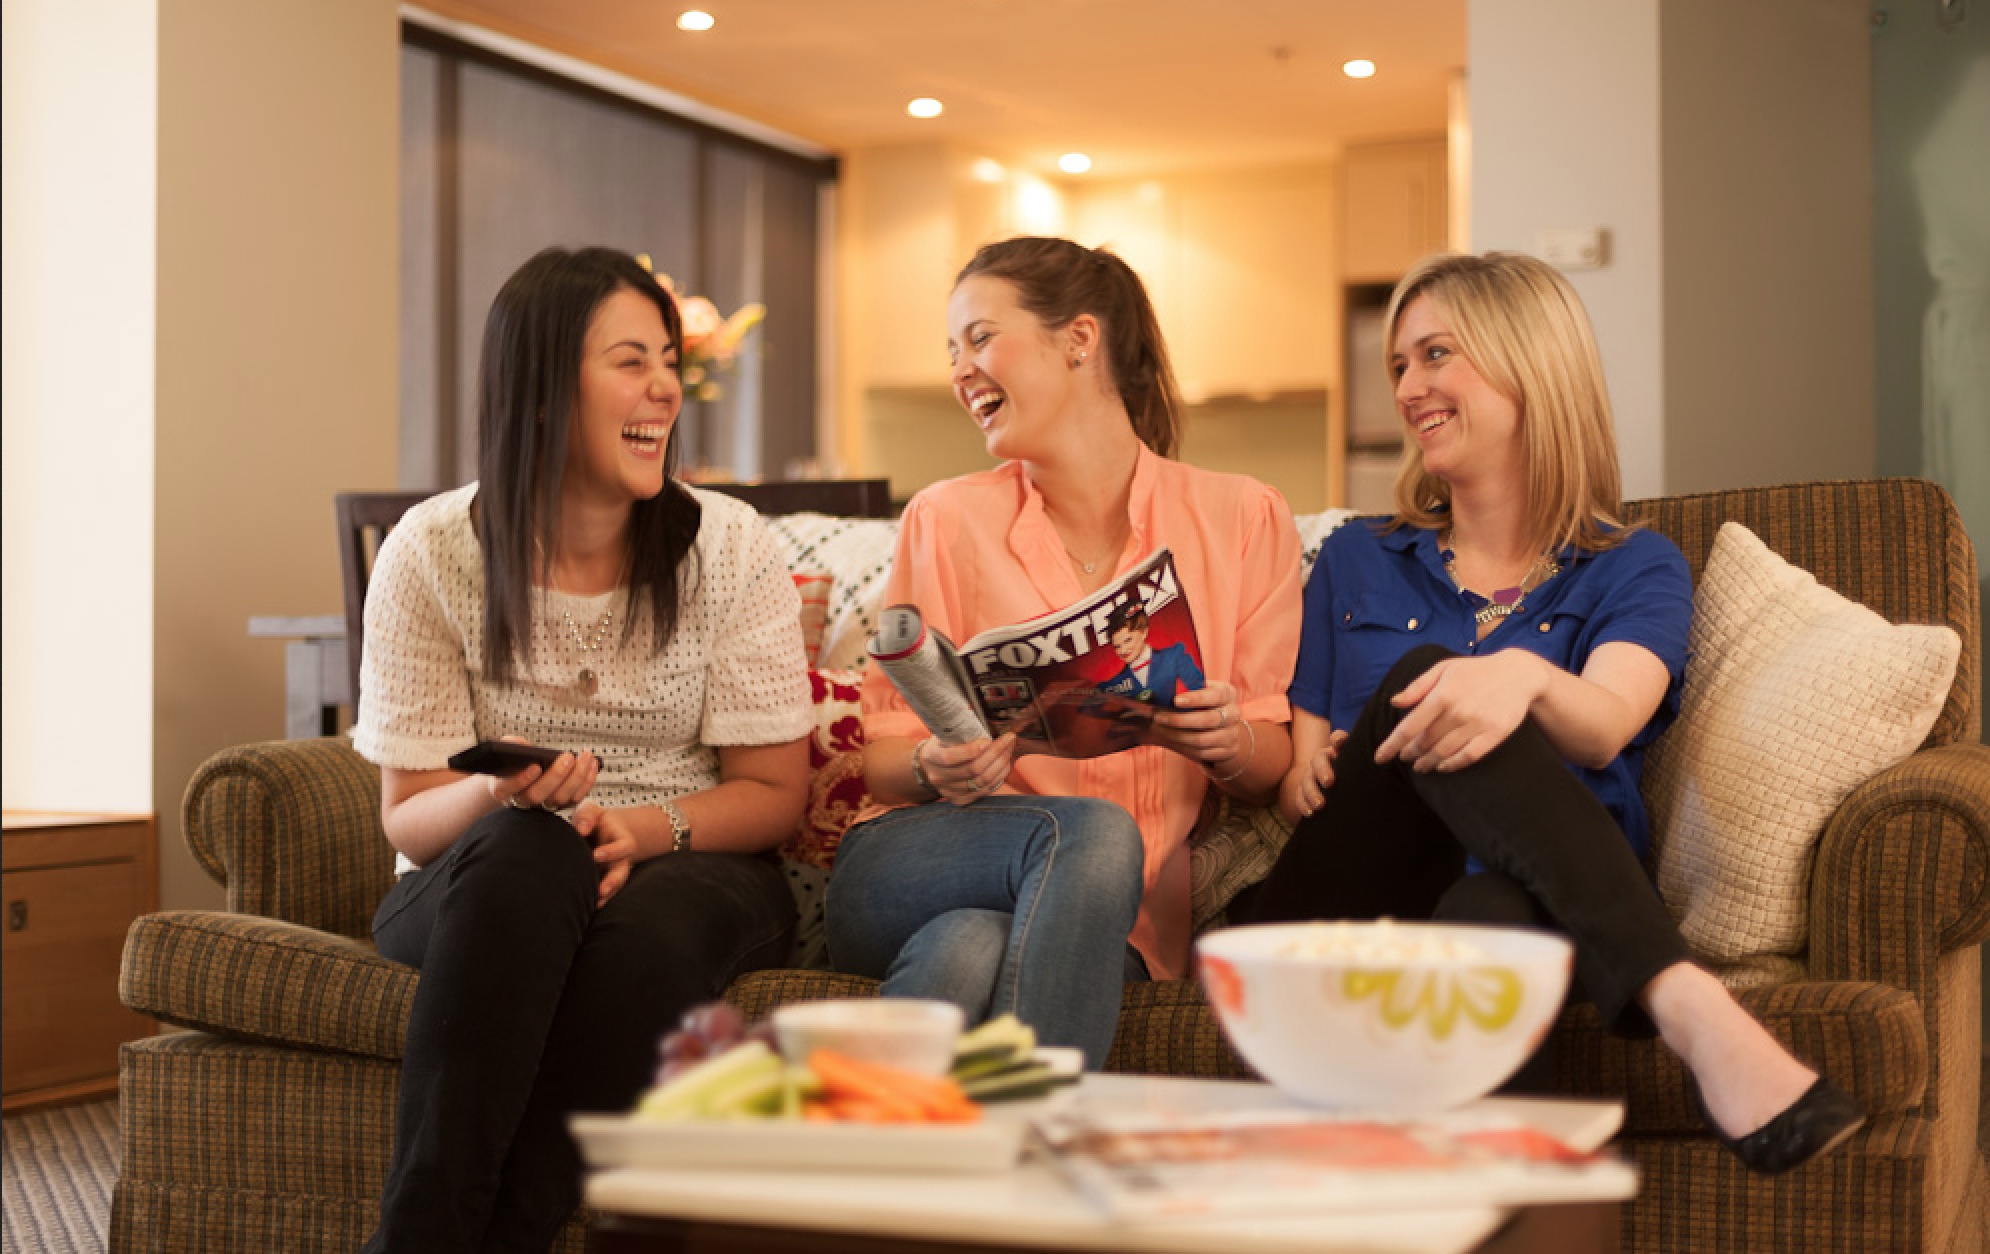 Host a Girls' Night In brought to you by The Cancer Council